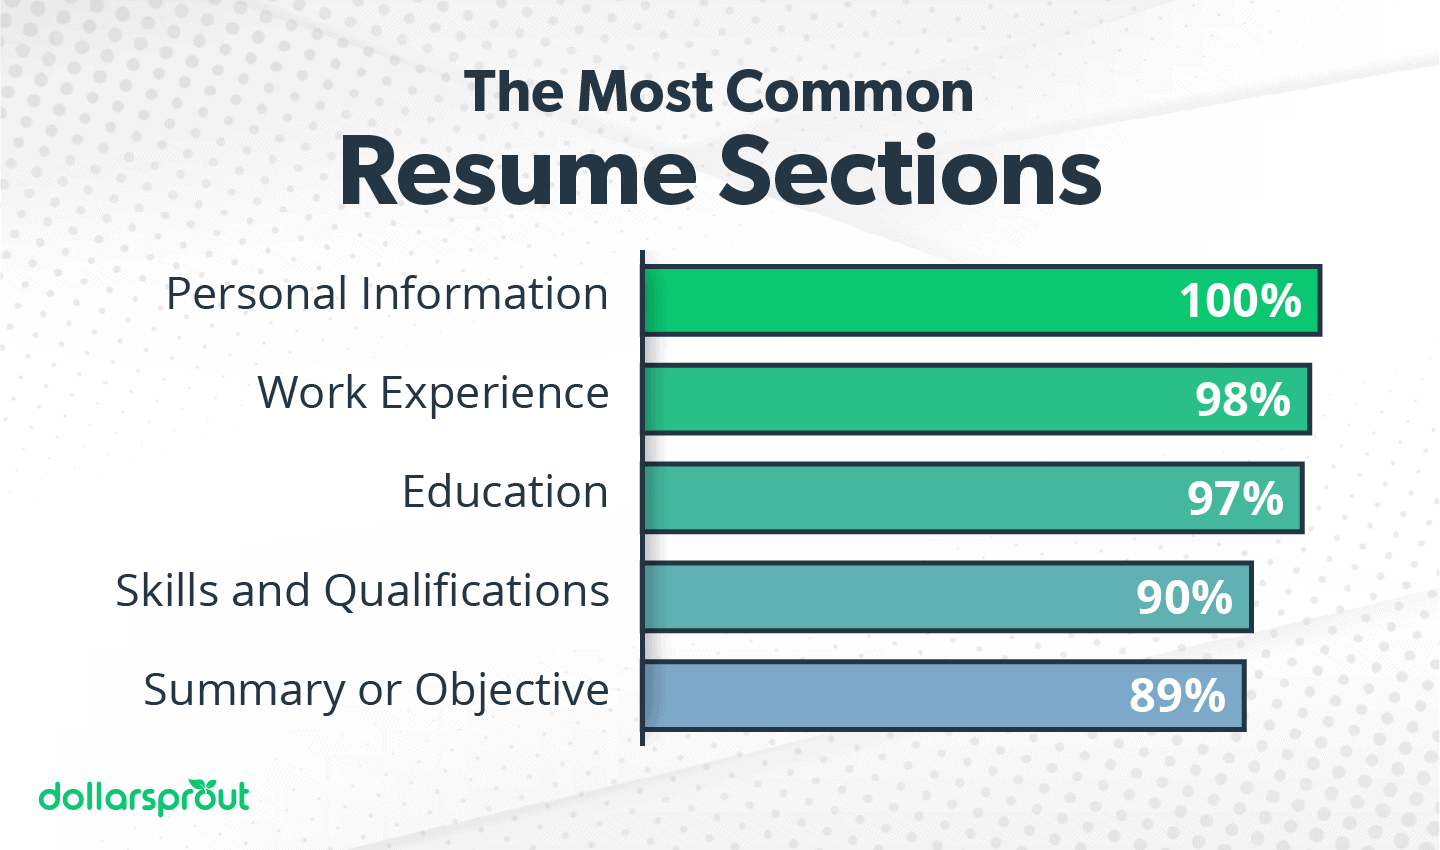 The Most Common Resume Sections